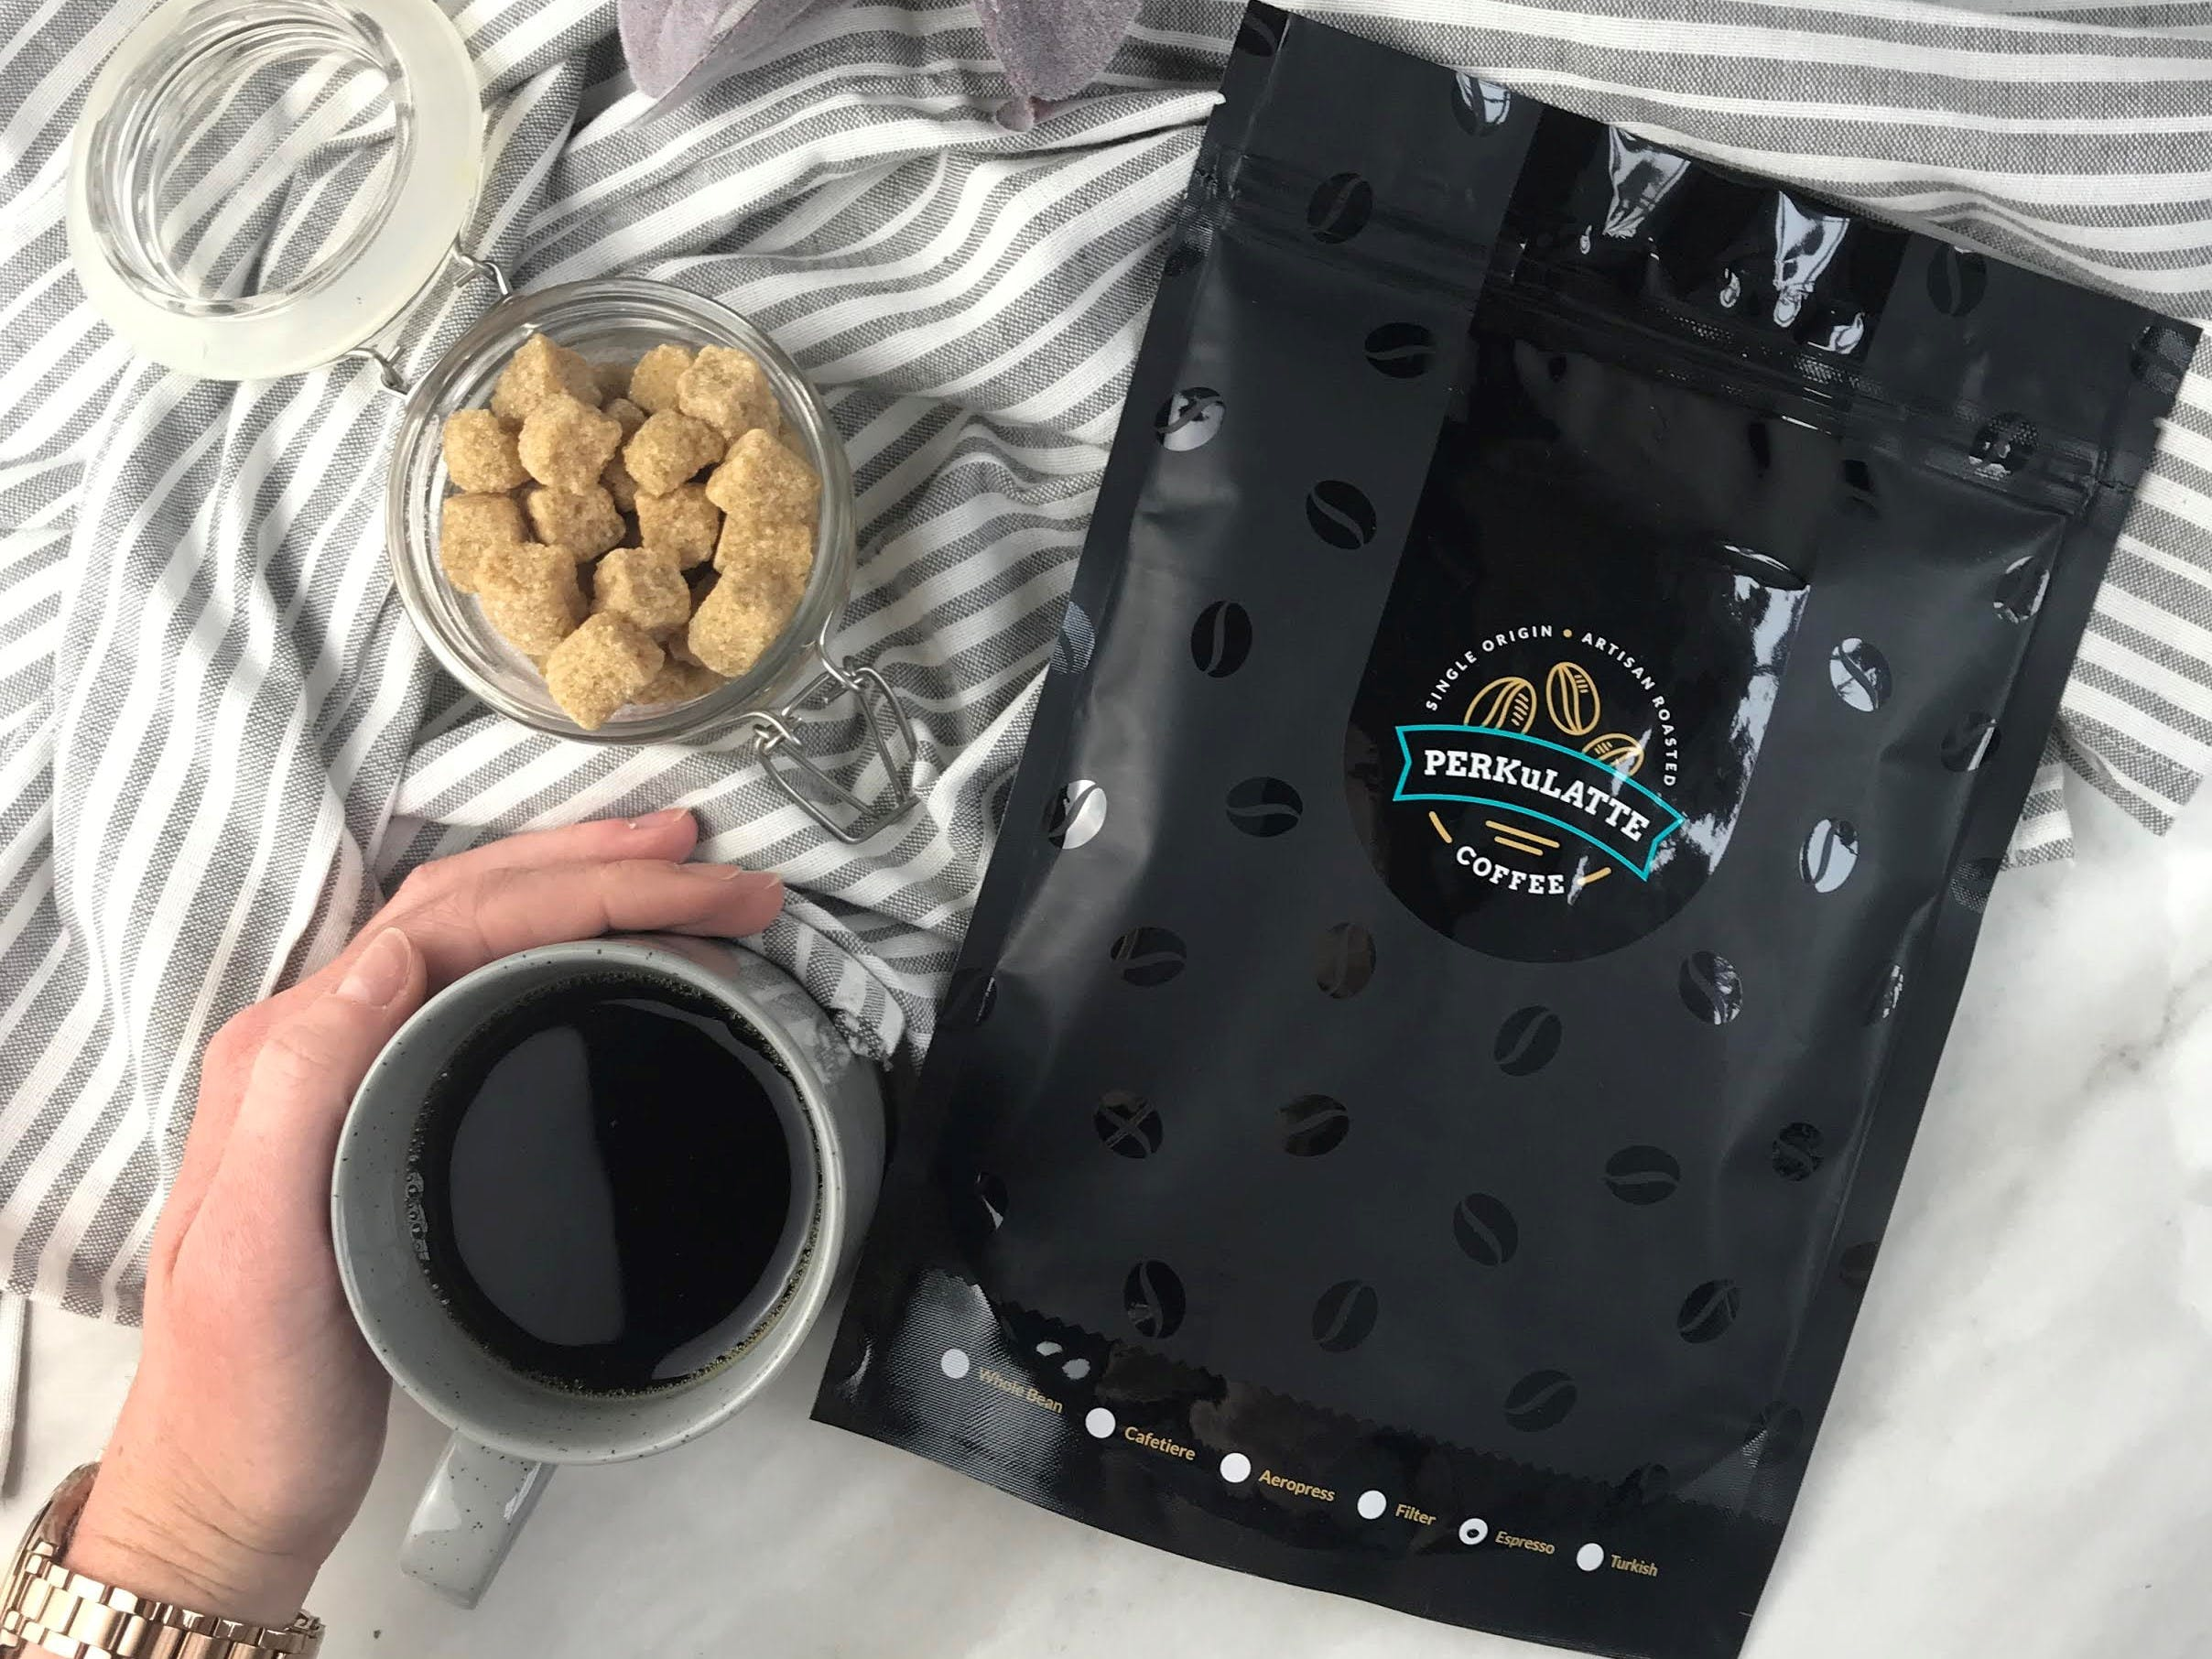 Perkulatte Monthly Coffee Subscription Box